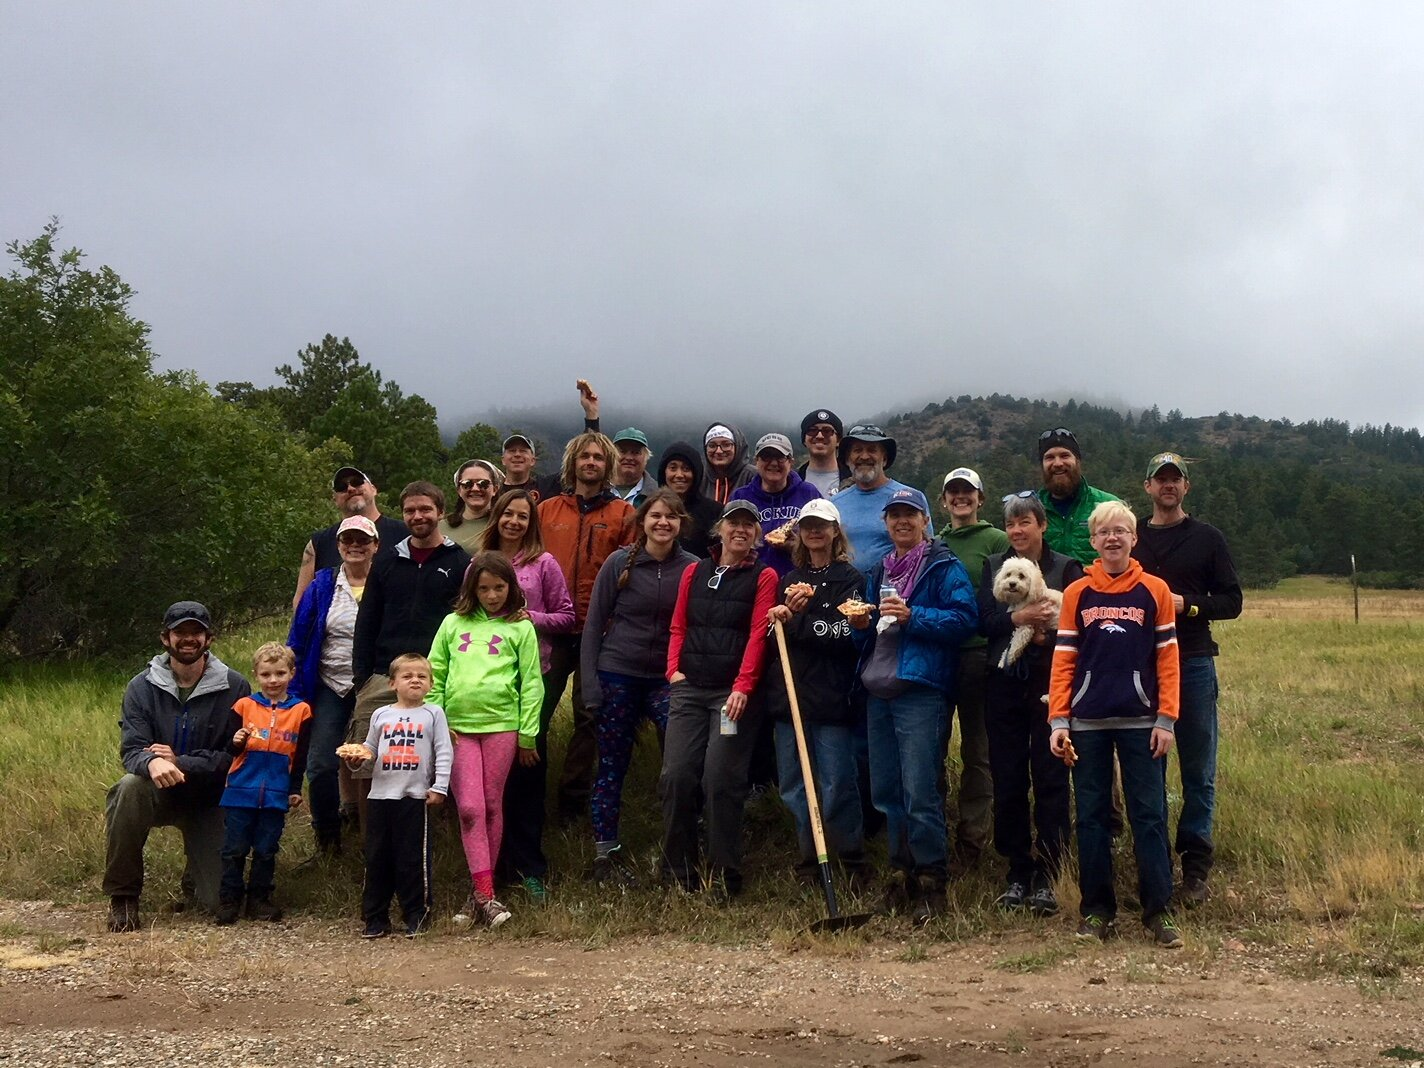 Take 4 minutes to support trails - Link your Kroger Community Rewards now!